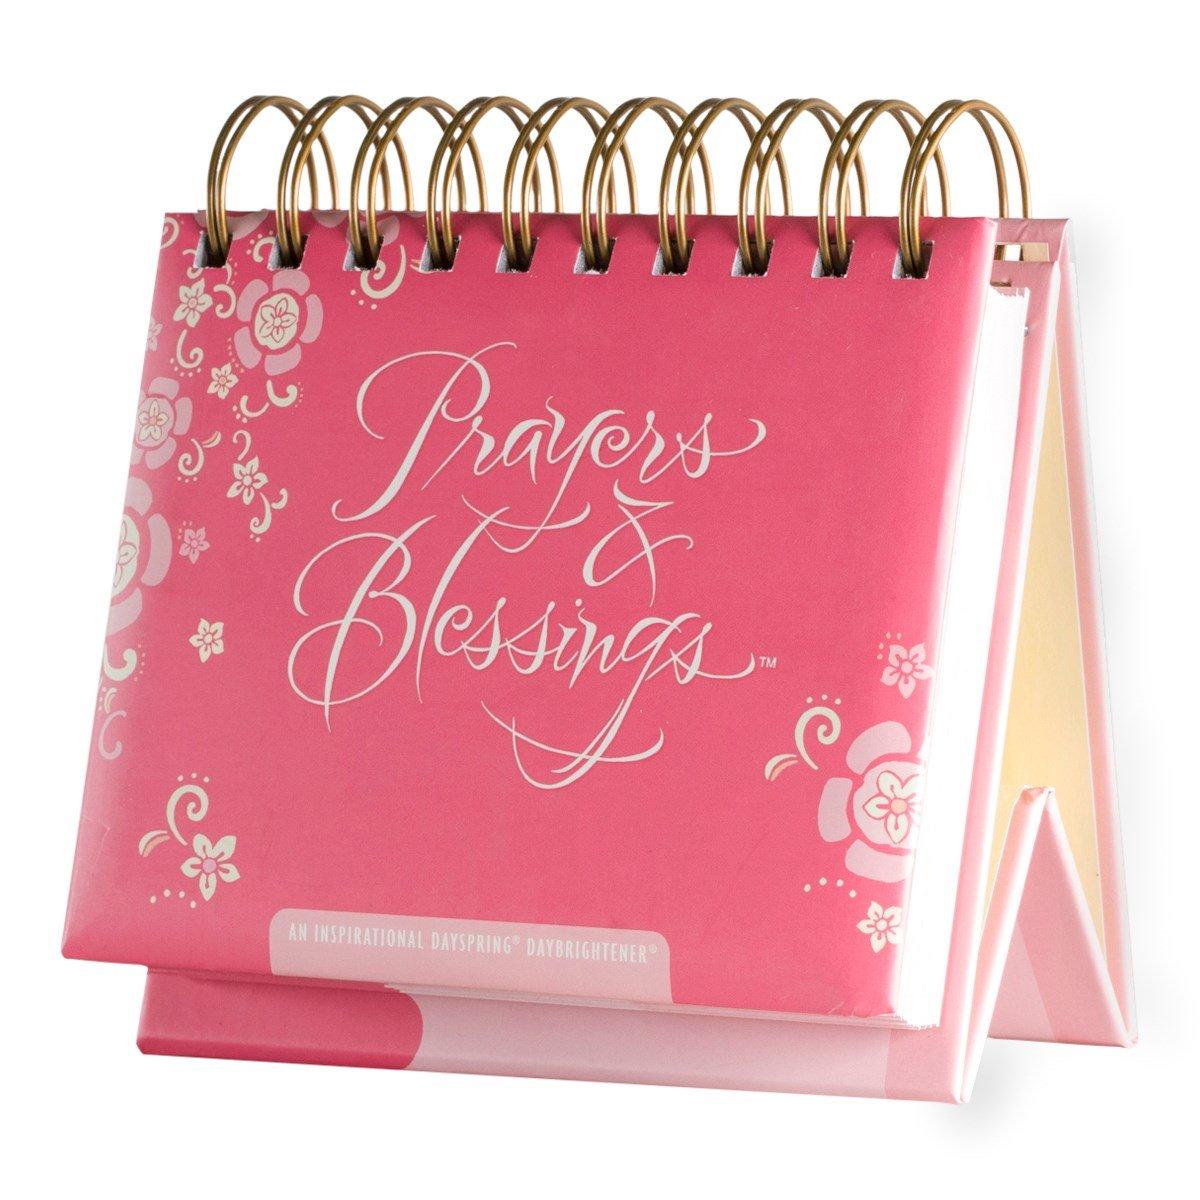 Flip Calendar - Prayers and Blessings